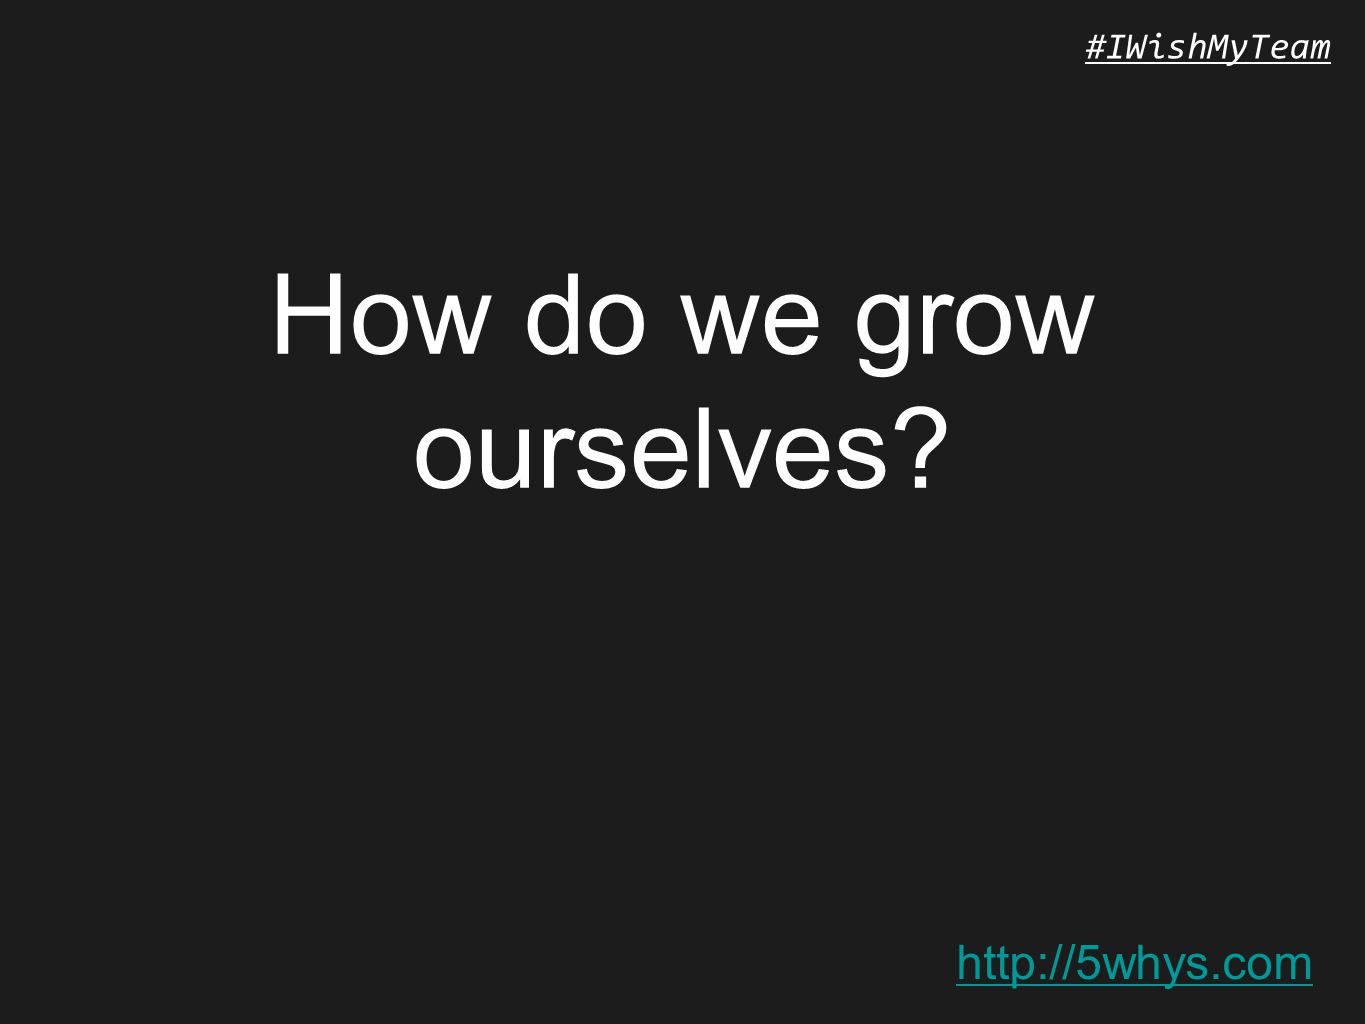 http://5whys.com #IWishMyTeam How do we grow ourselves